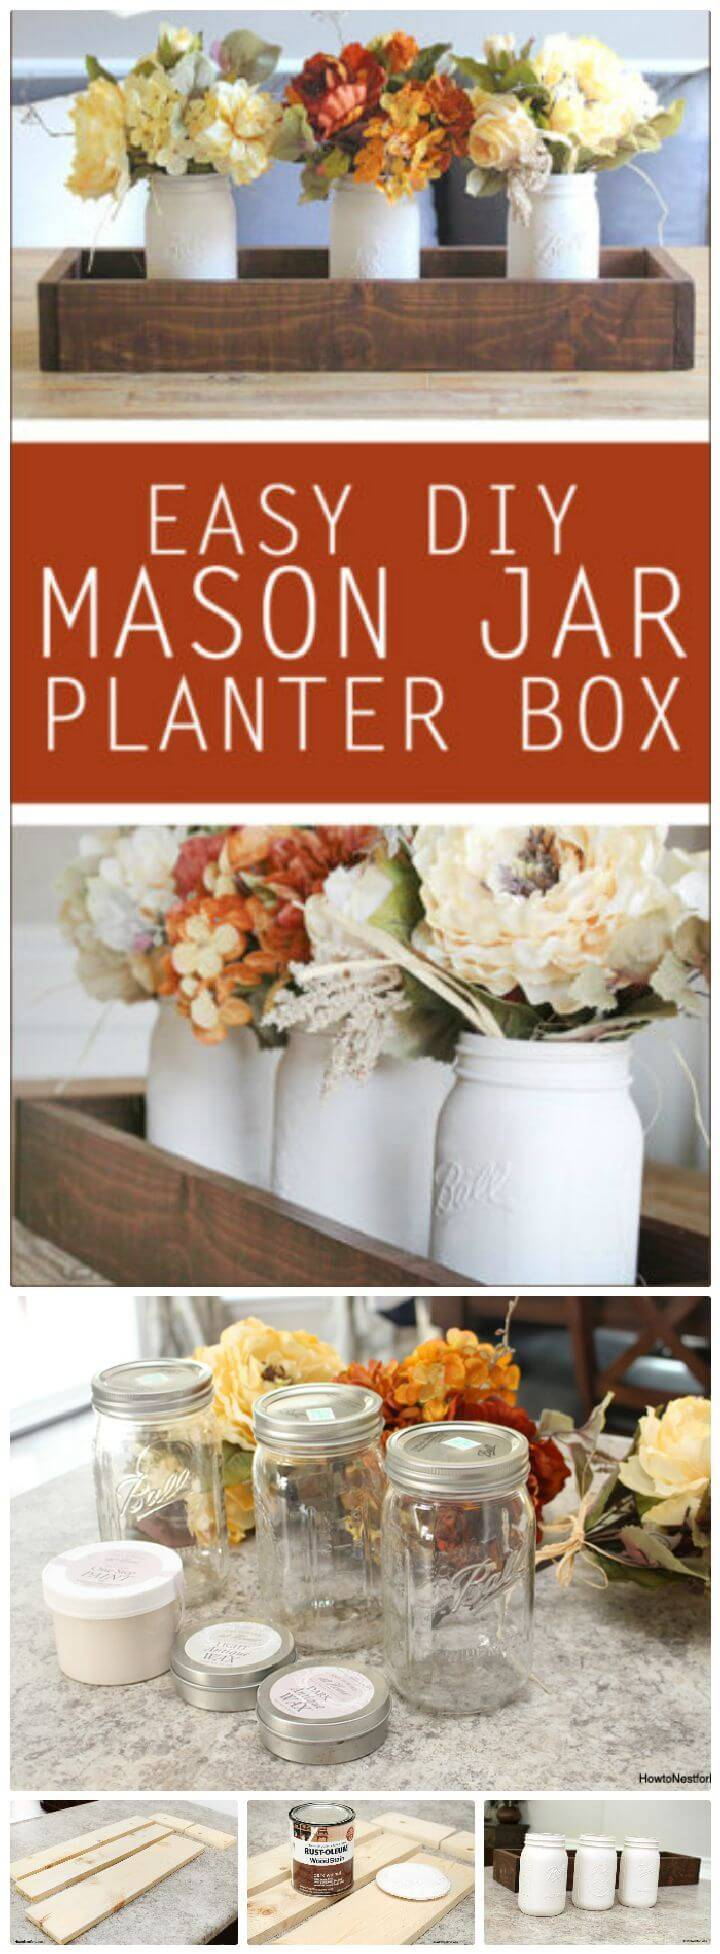 DIY Mason Jar Planter Box Centerpiece